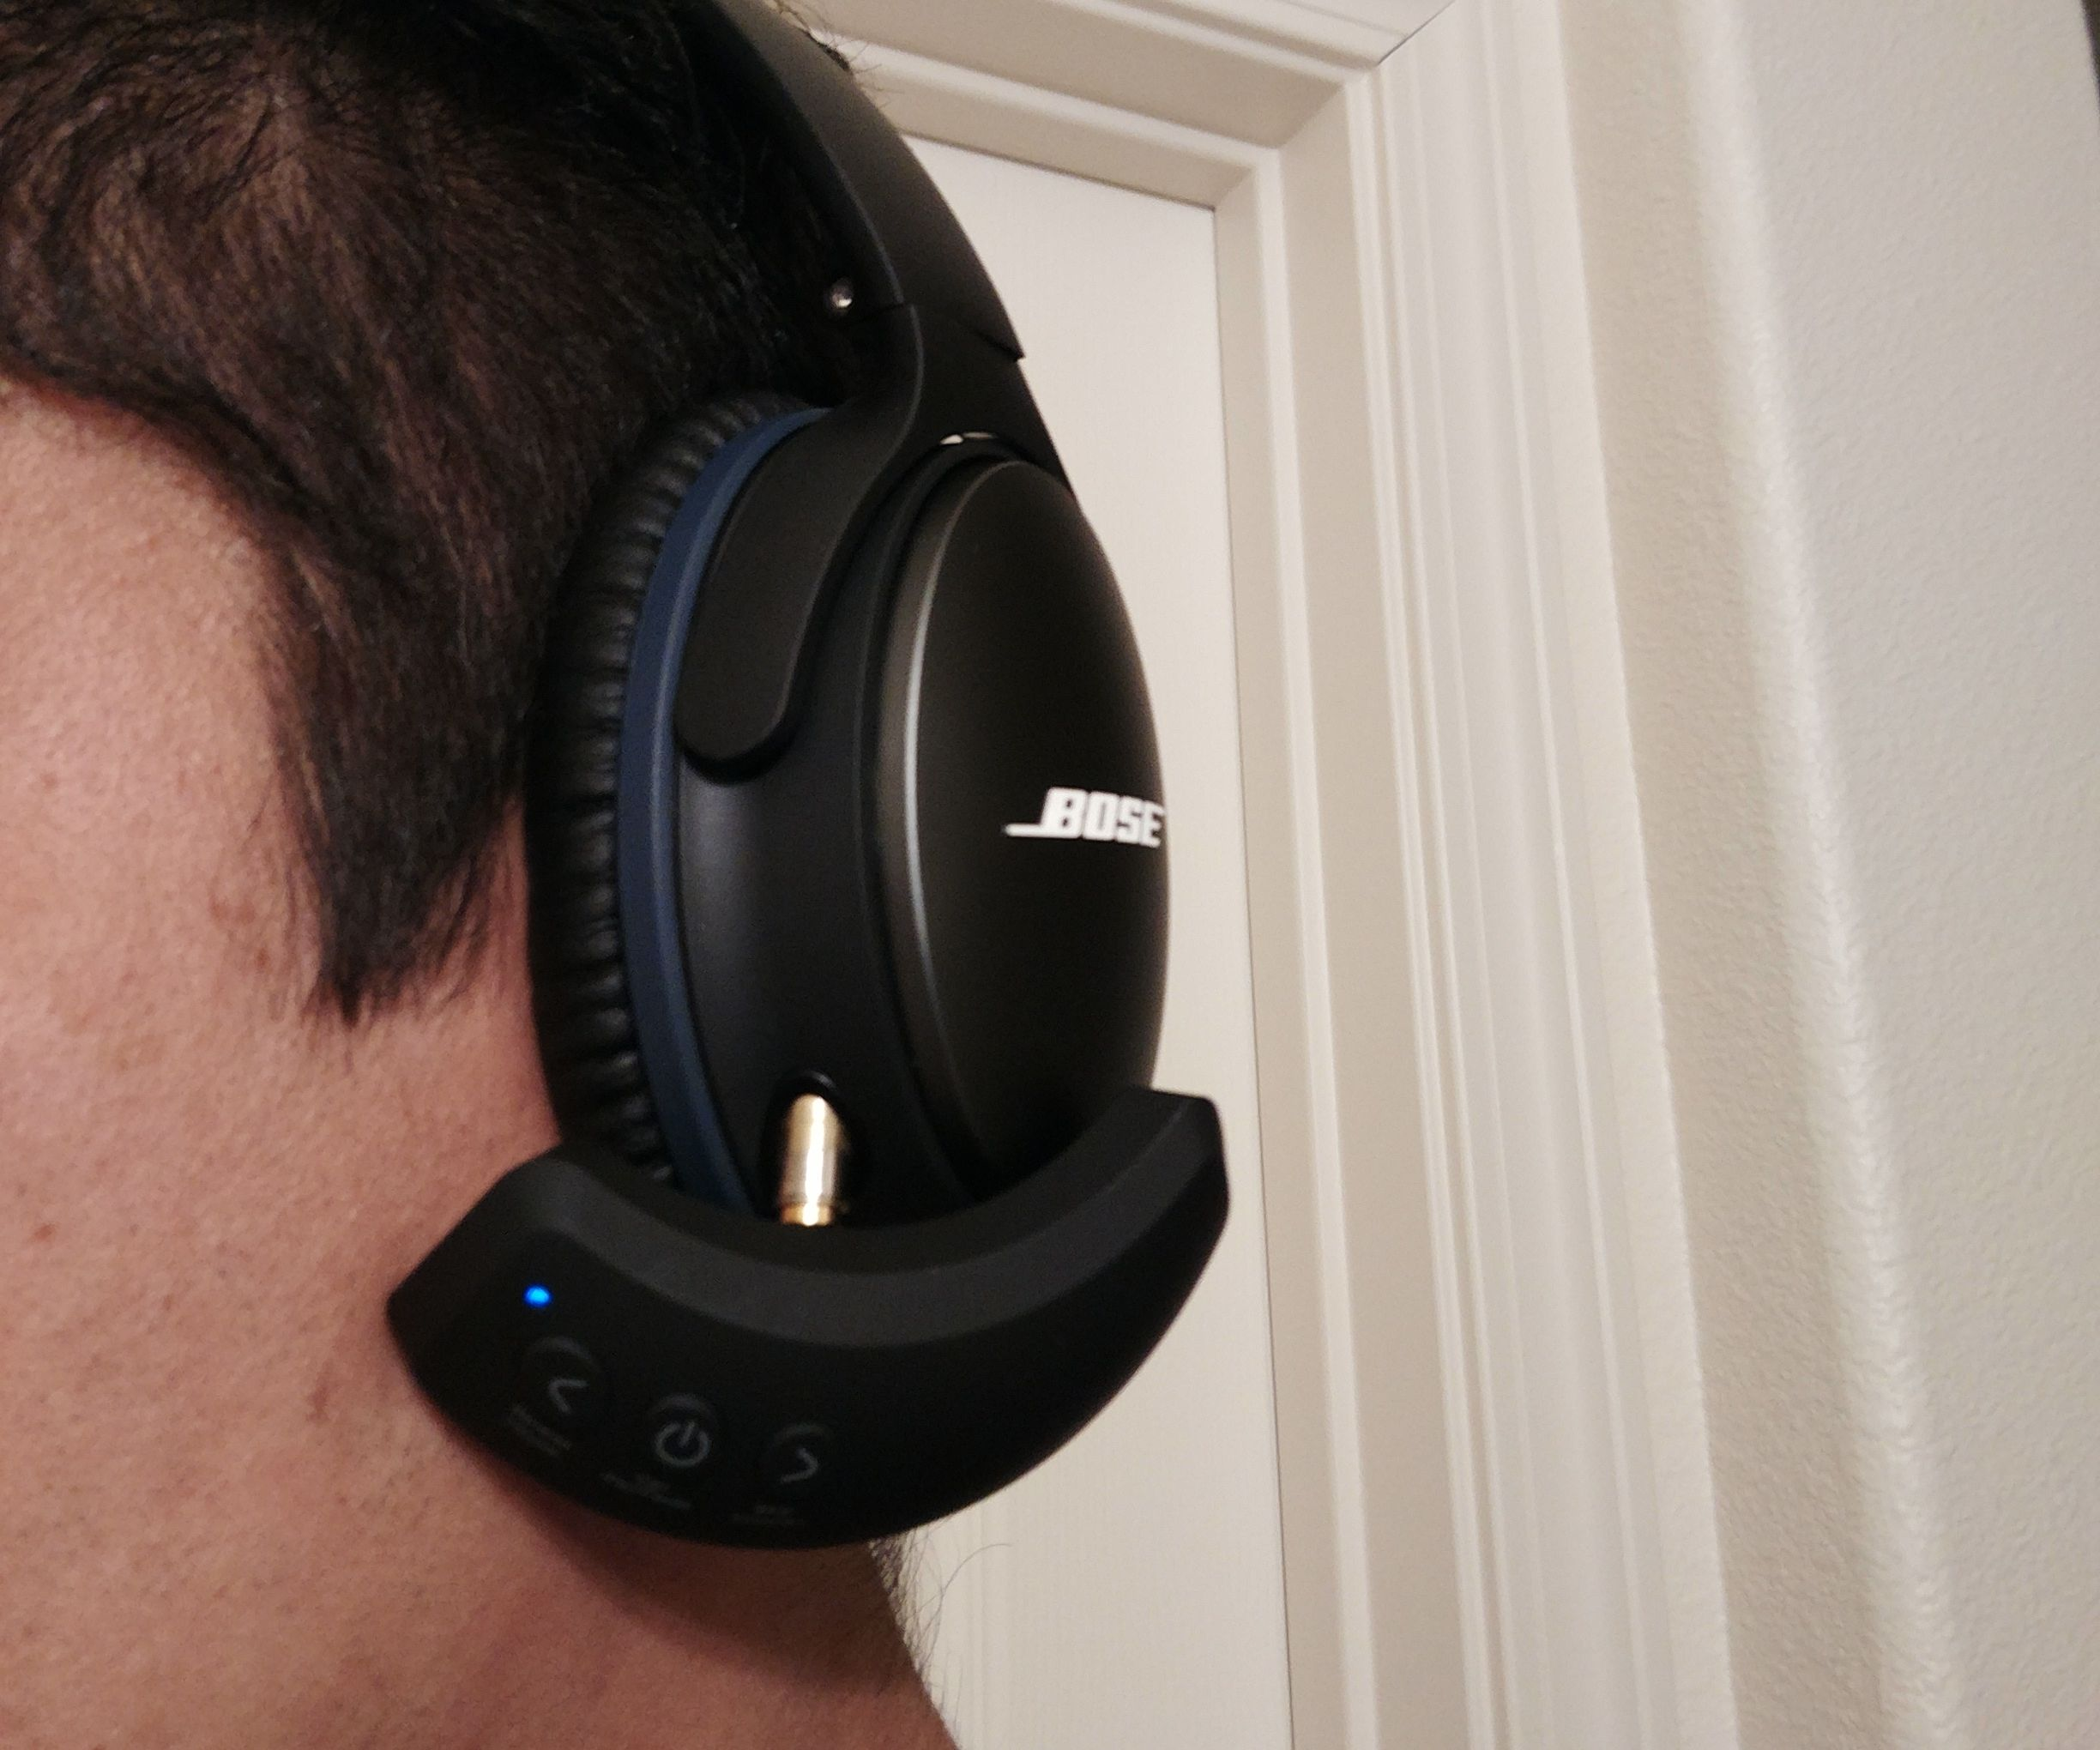 Convert Bose QC25 to Wireless Including Microphone for Less Than 15 Dollars!